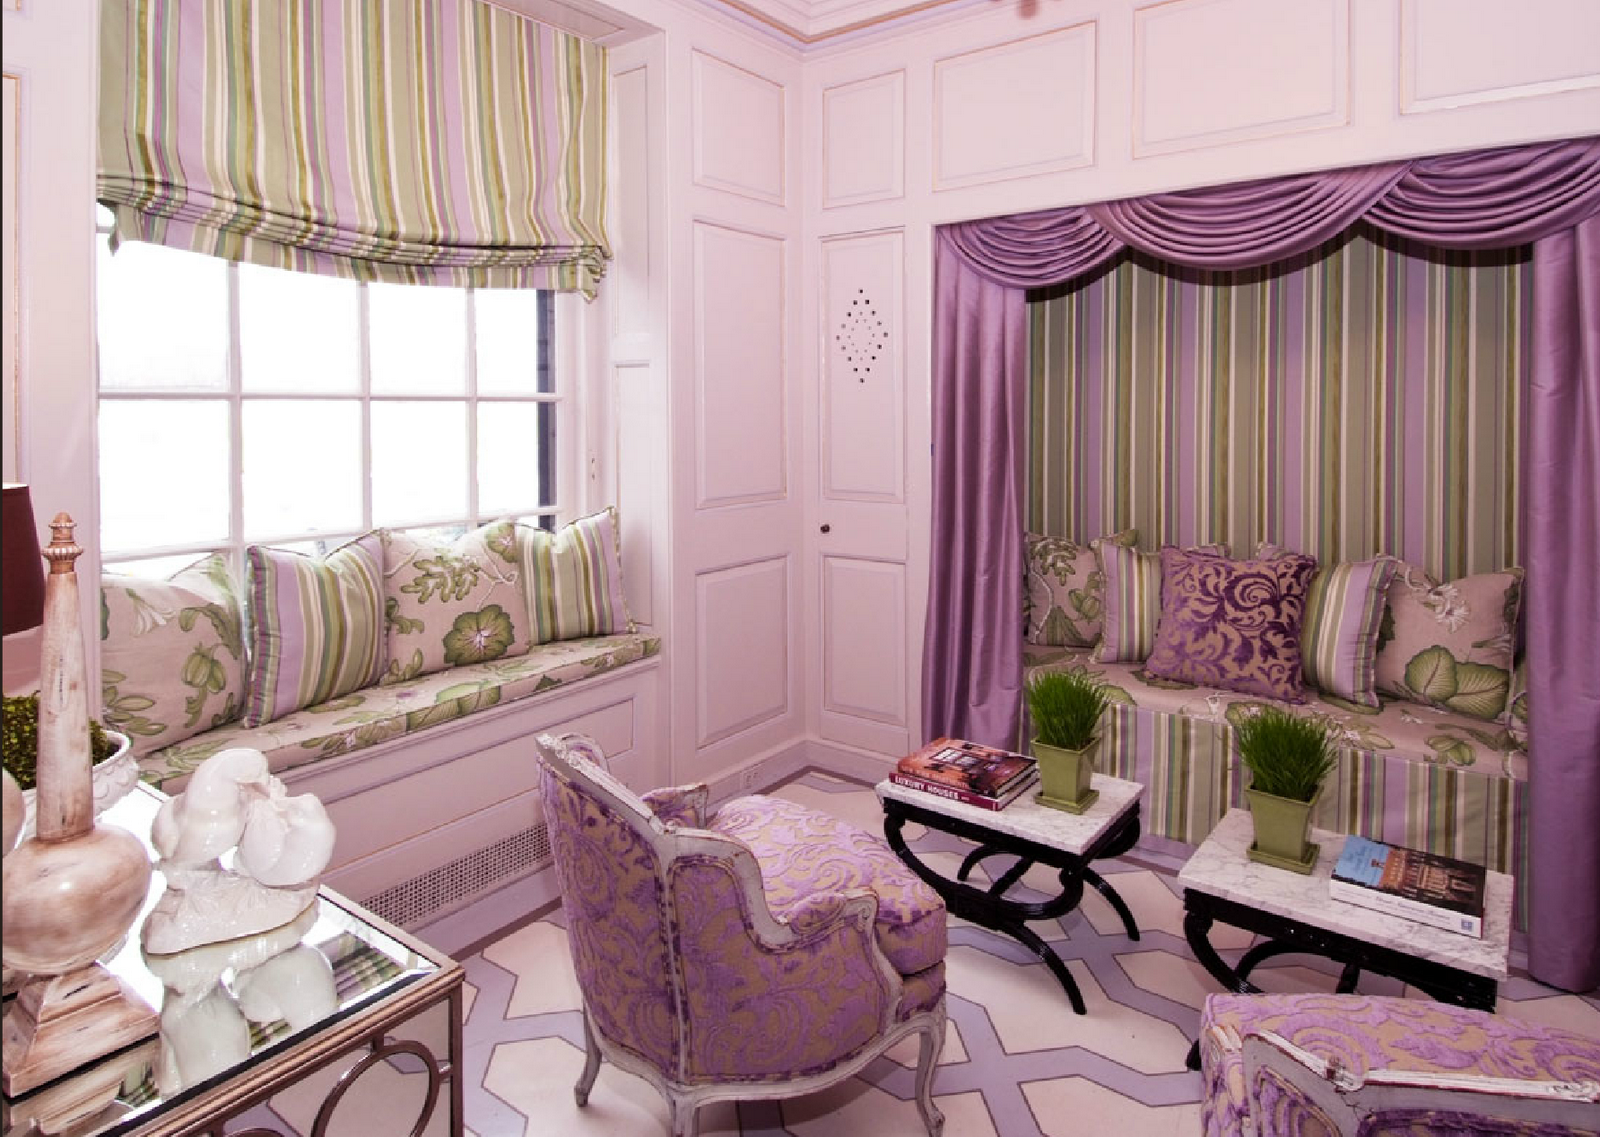 4 teen girls bedroom 7 interior design ideas - Pics of beautiful room of girls ...